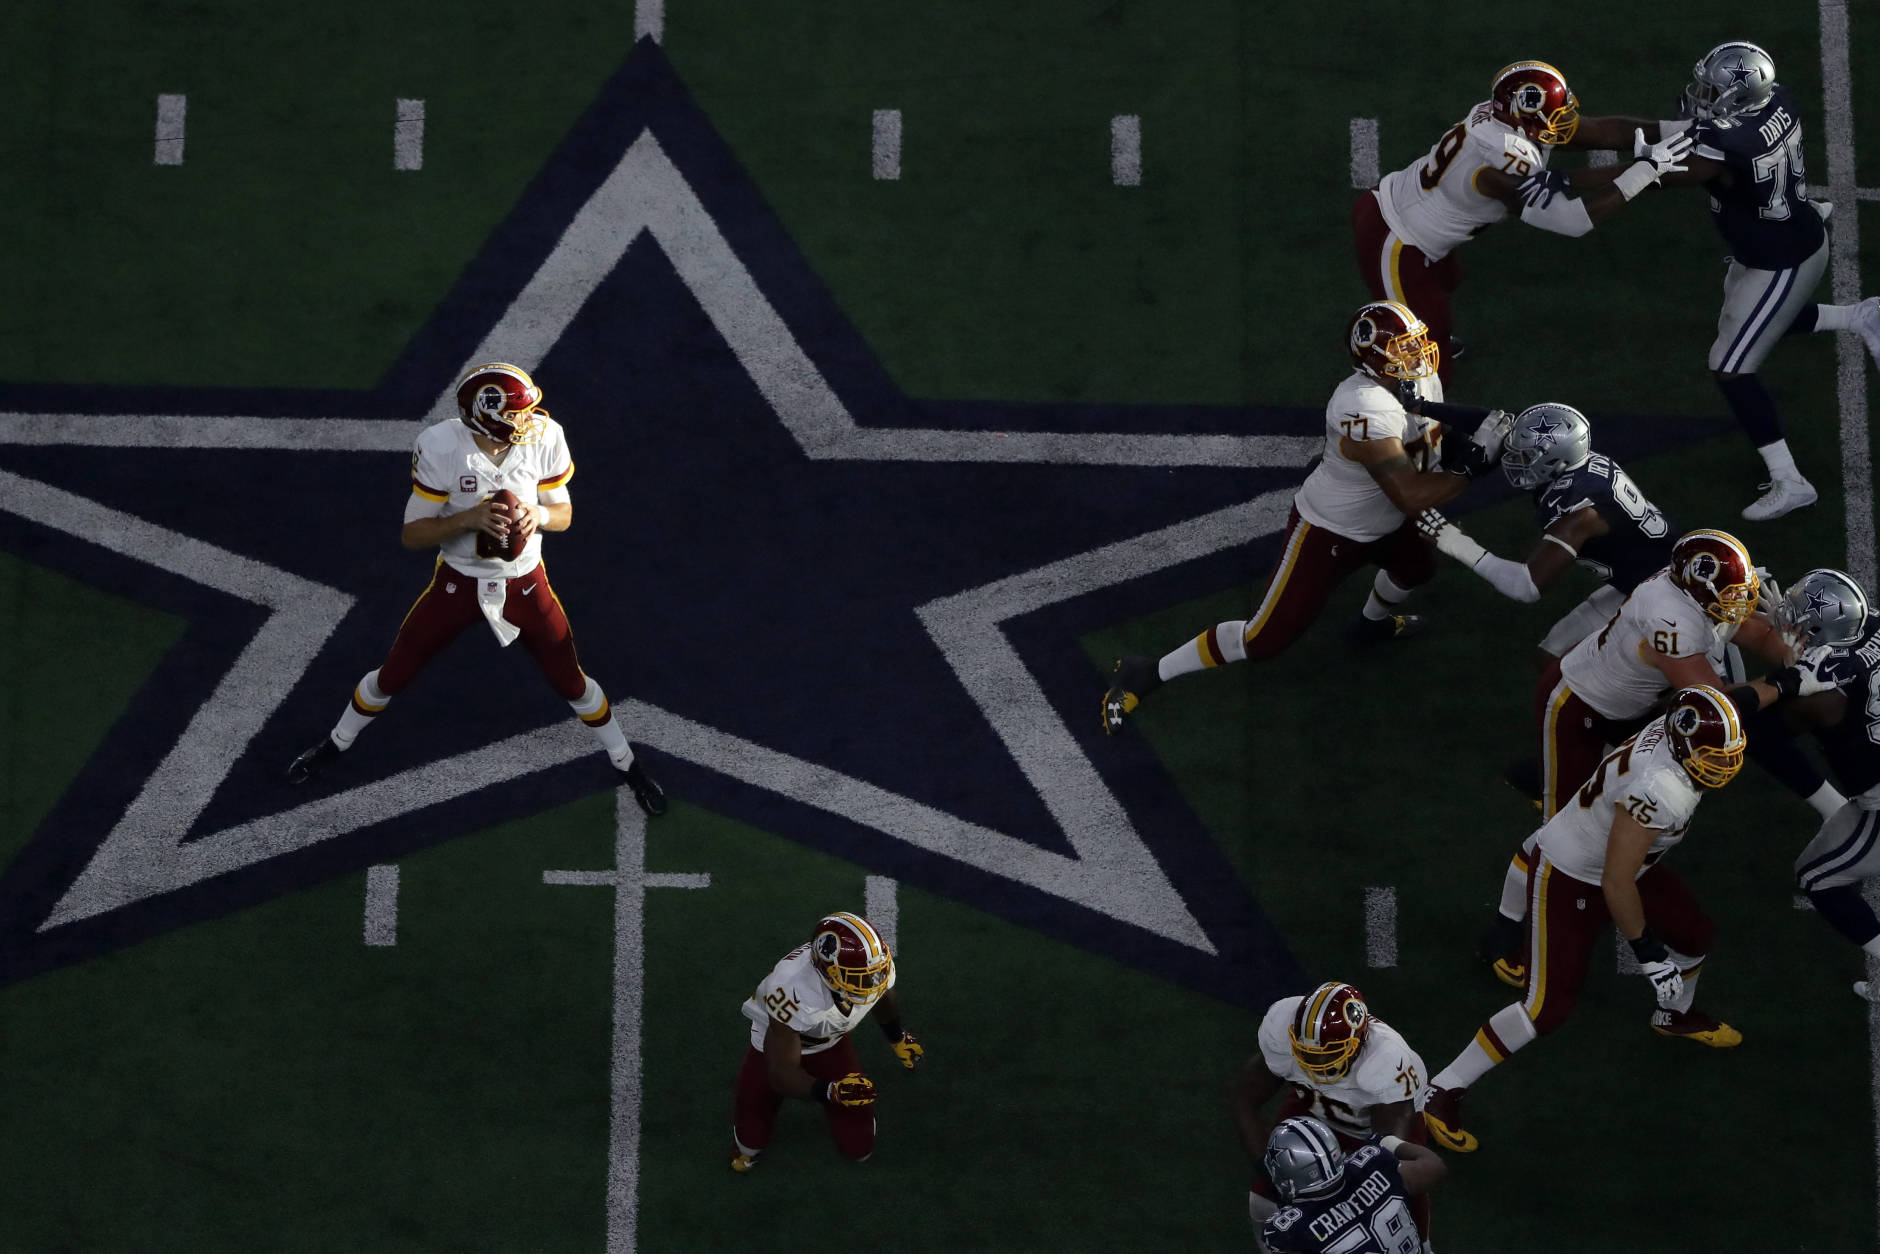 ARLINGTON, TX - NOVEMBER 24:   Kirk Cousins #8 of the Washington Redskins drops back to pass during the first half against the Dallas Cowboys at AT&T Stadium on November 24, 2016 in Arlington, Texas.  (Photo by Ronald Martinez/Getty Images)